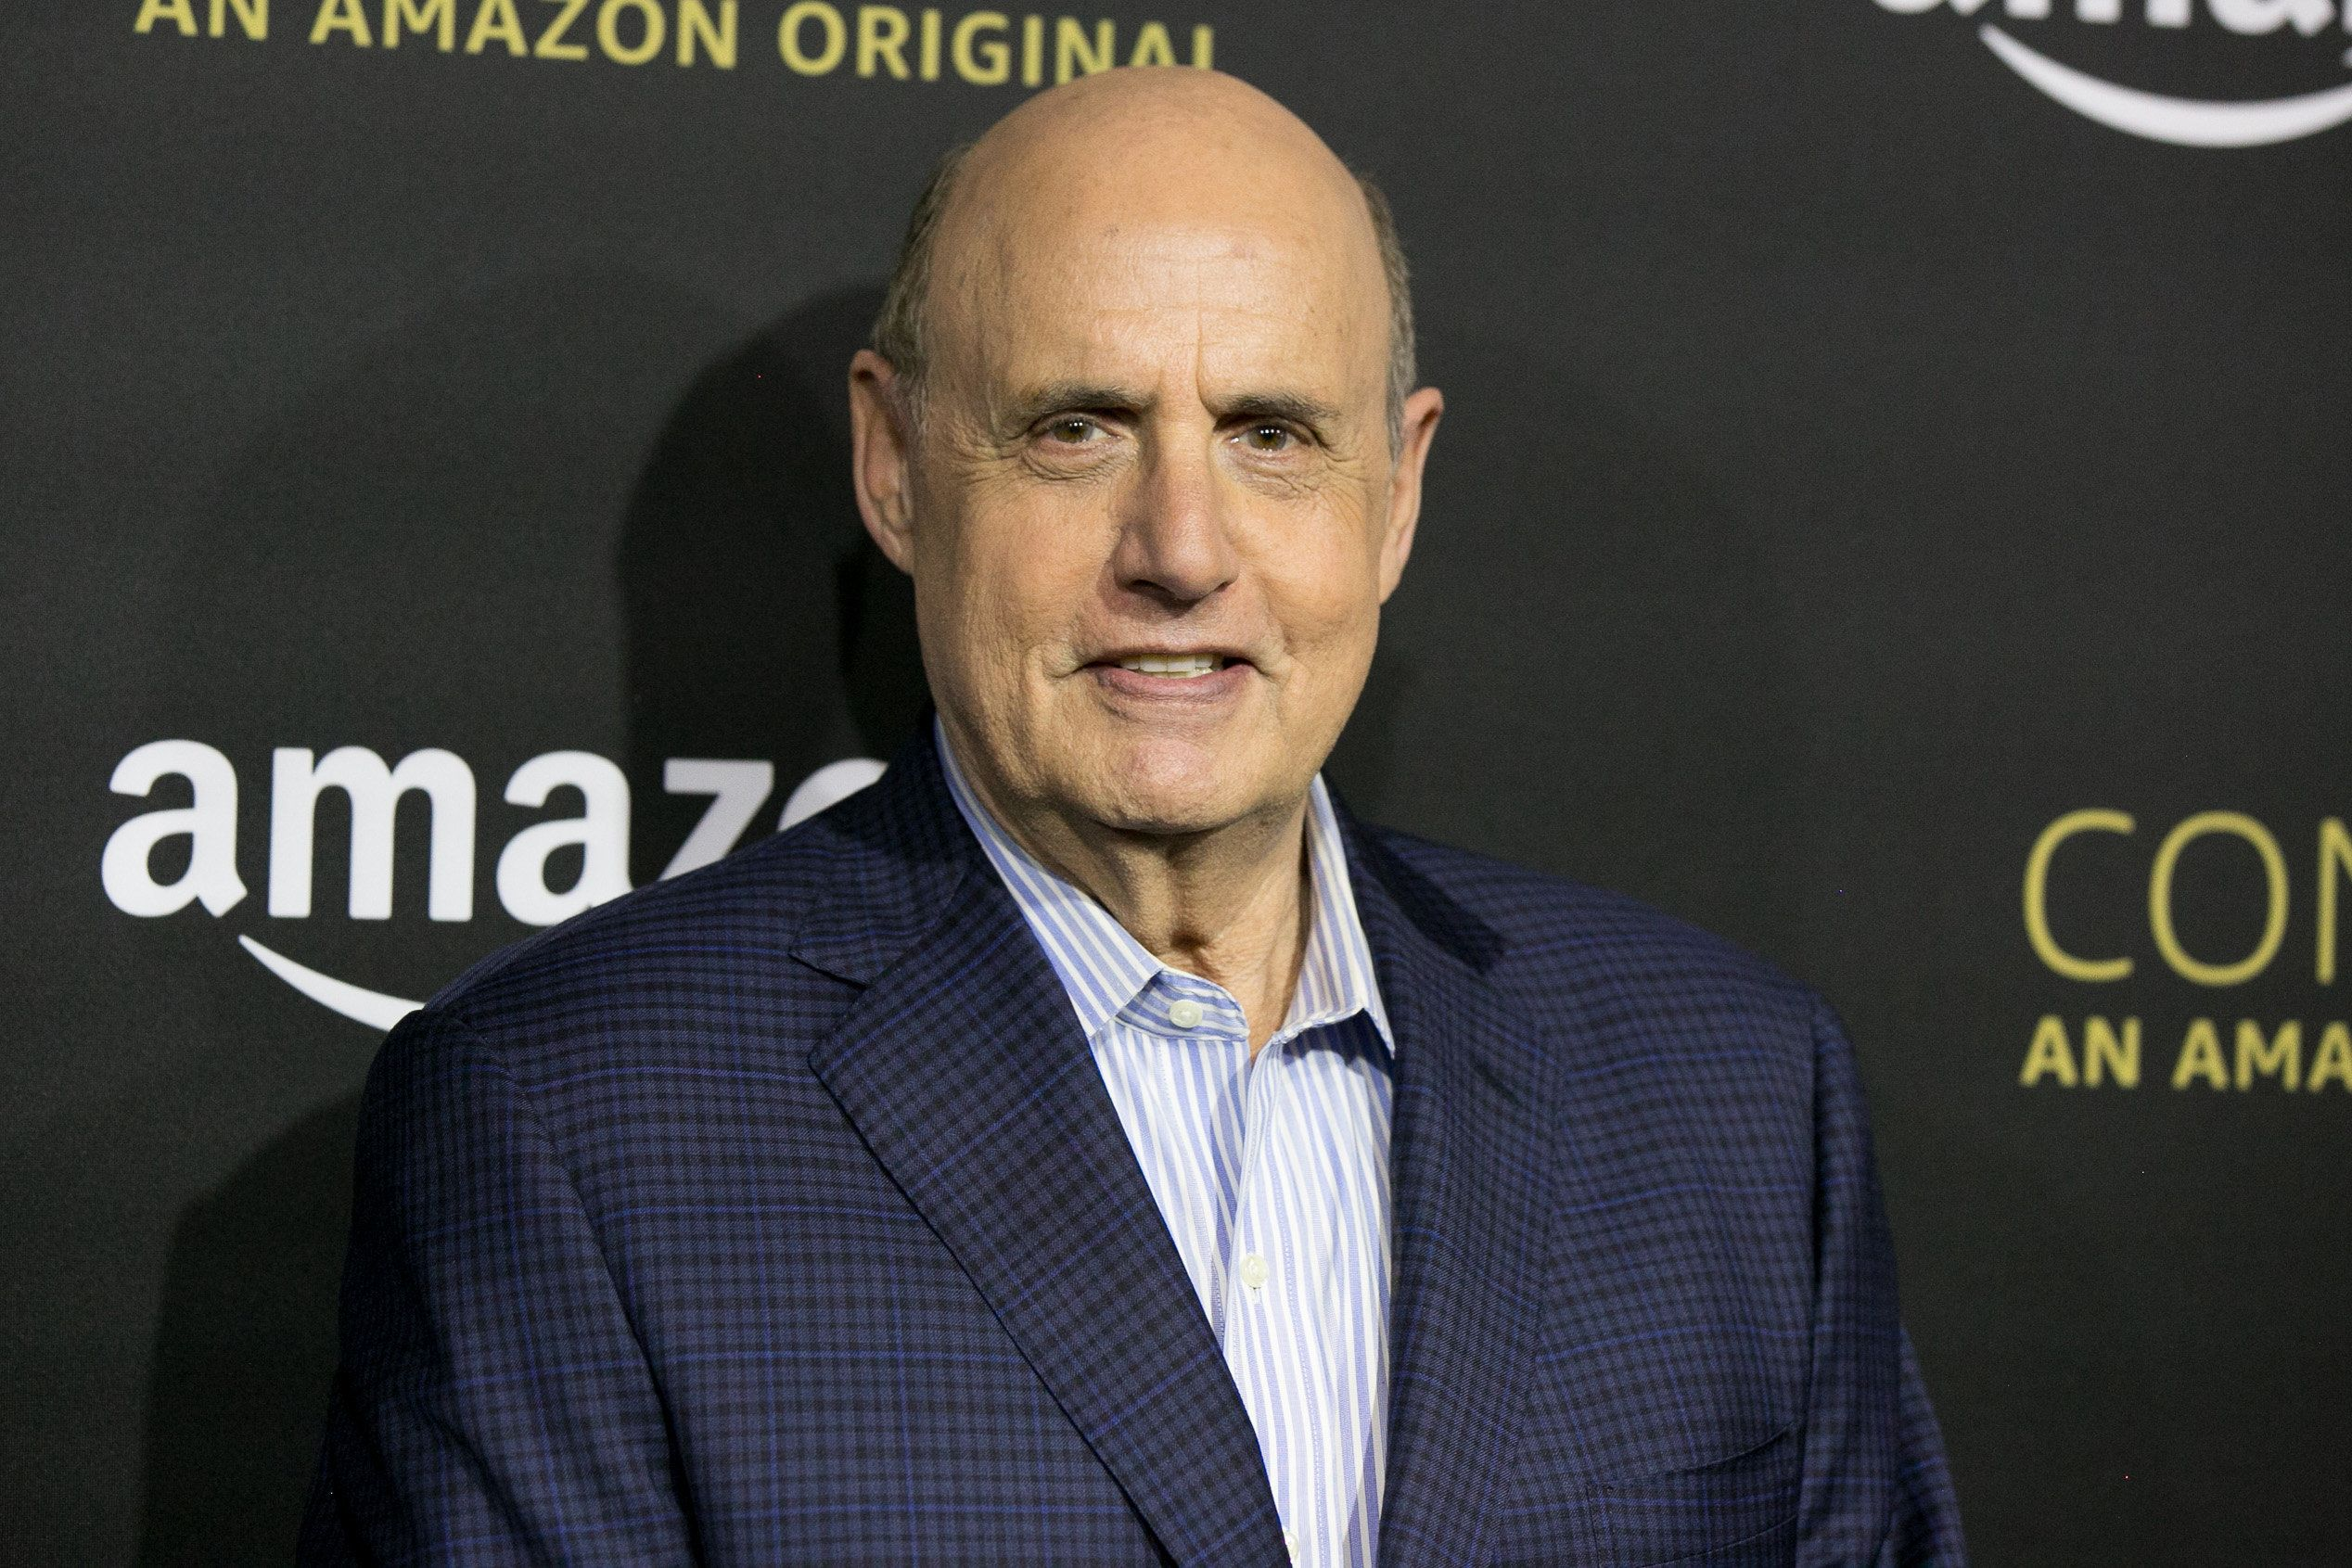 HOLLYWOOD, CA - APRIL 22:  Jeffrey Tambor arrives for Amazon Prime Video's Emmy FYC event and screening for 'Transparent' at Hollywood Athletic Club on April 22, 2017 in Hollywood, California.  (Photo by Gabriel Olsen/FilmMagic)